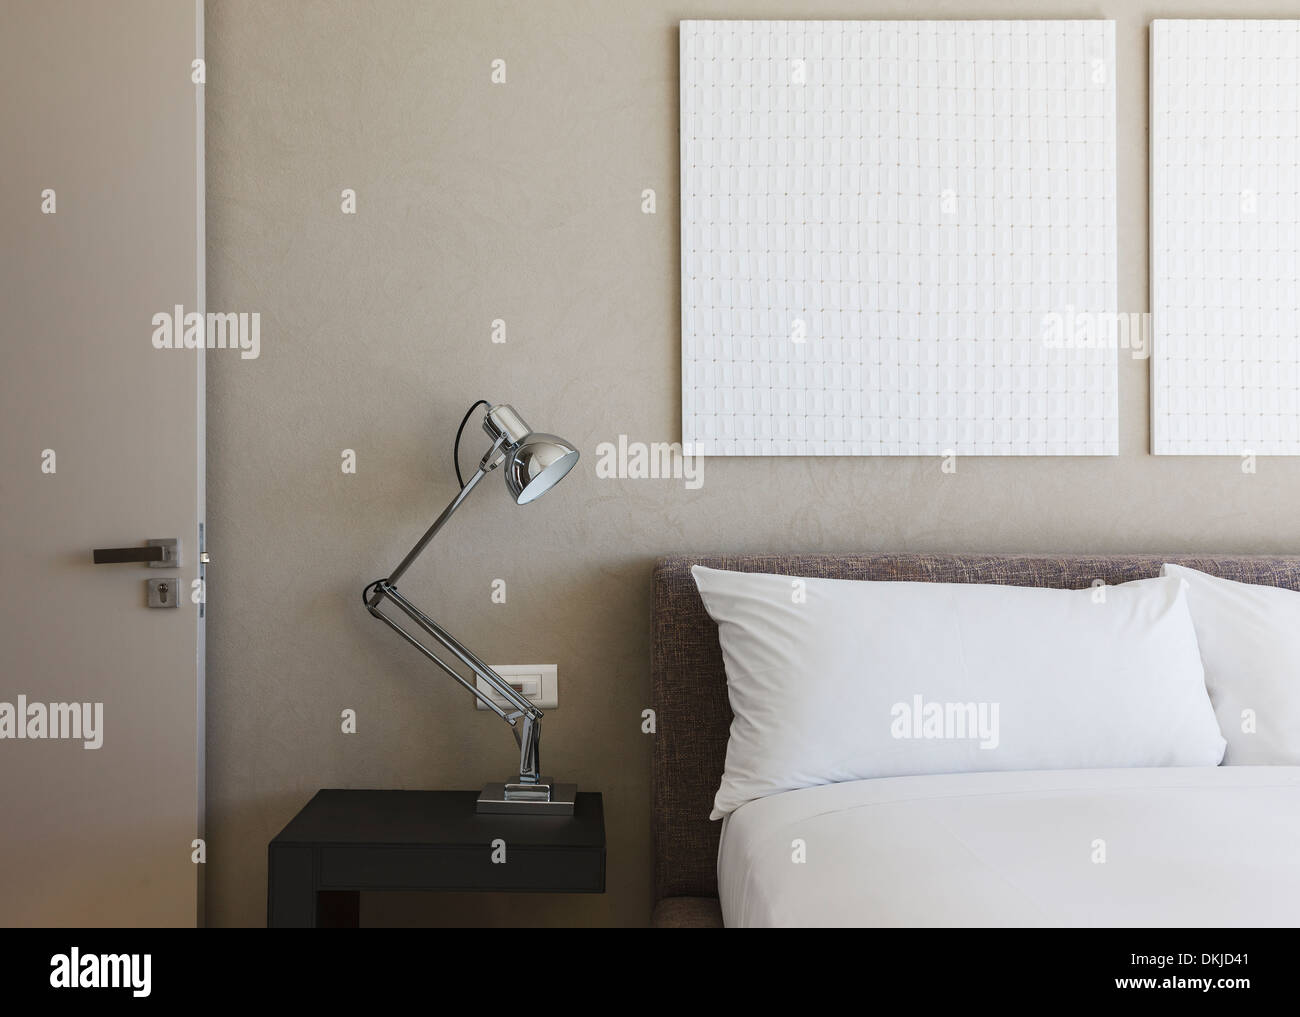 . Lamp and wall art in modern bedroom Stock Photo  63715009   Alamy